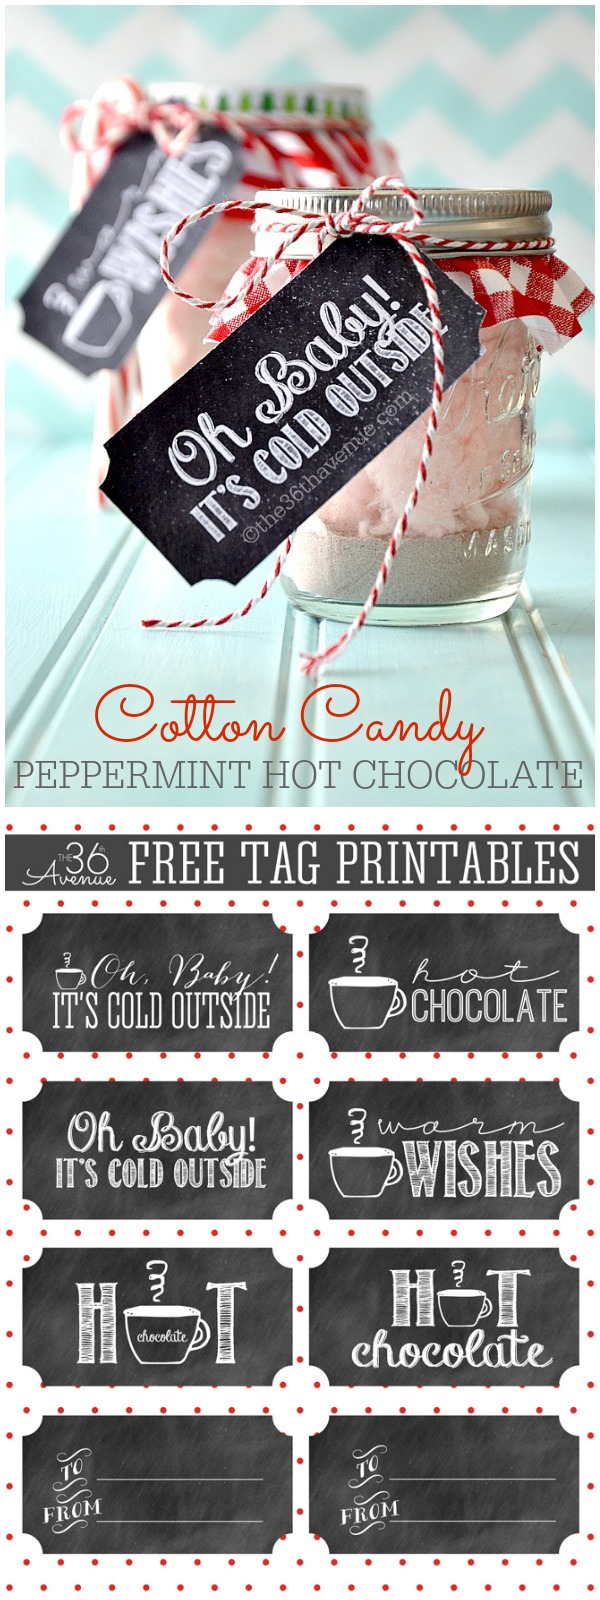 Cotton Candy Peppermint Hot Chocolate PINTEREST